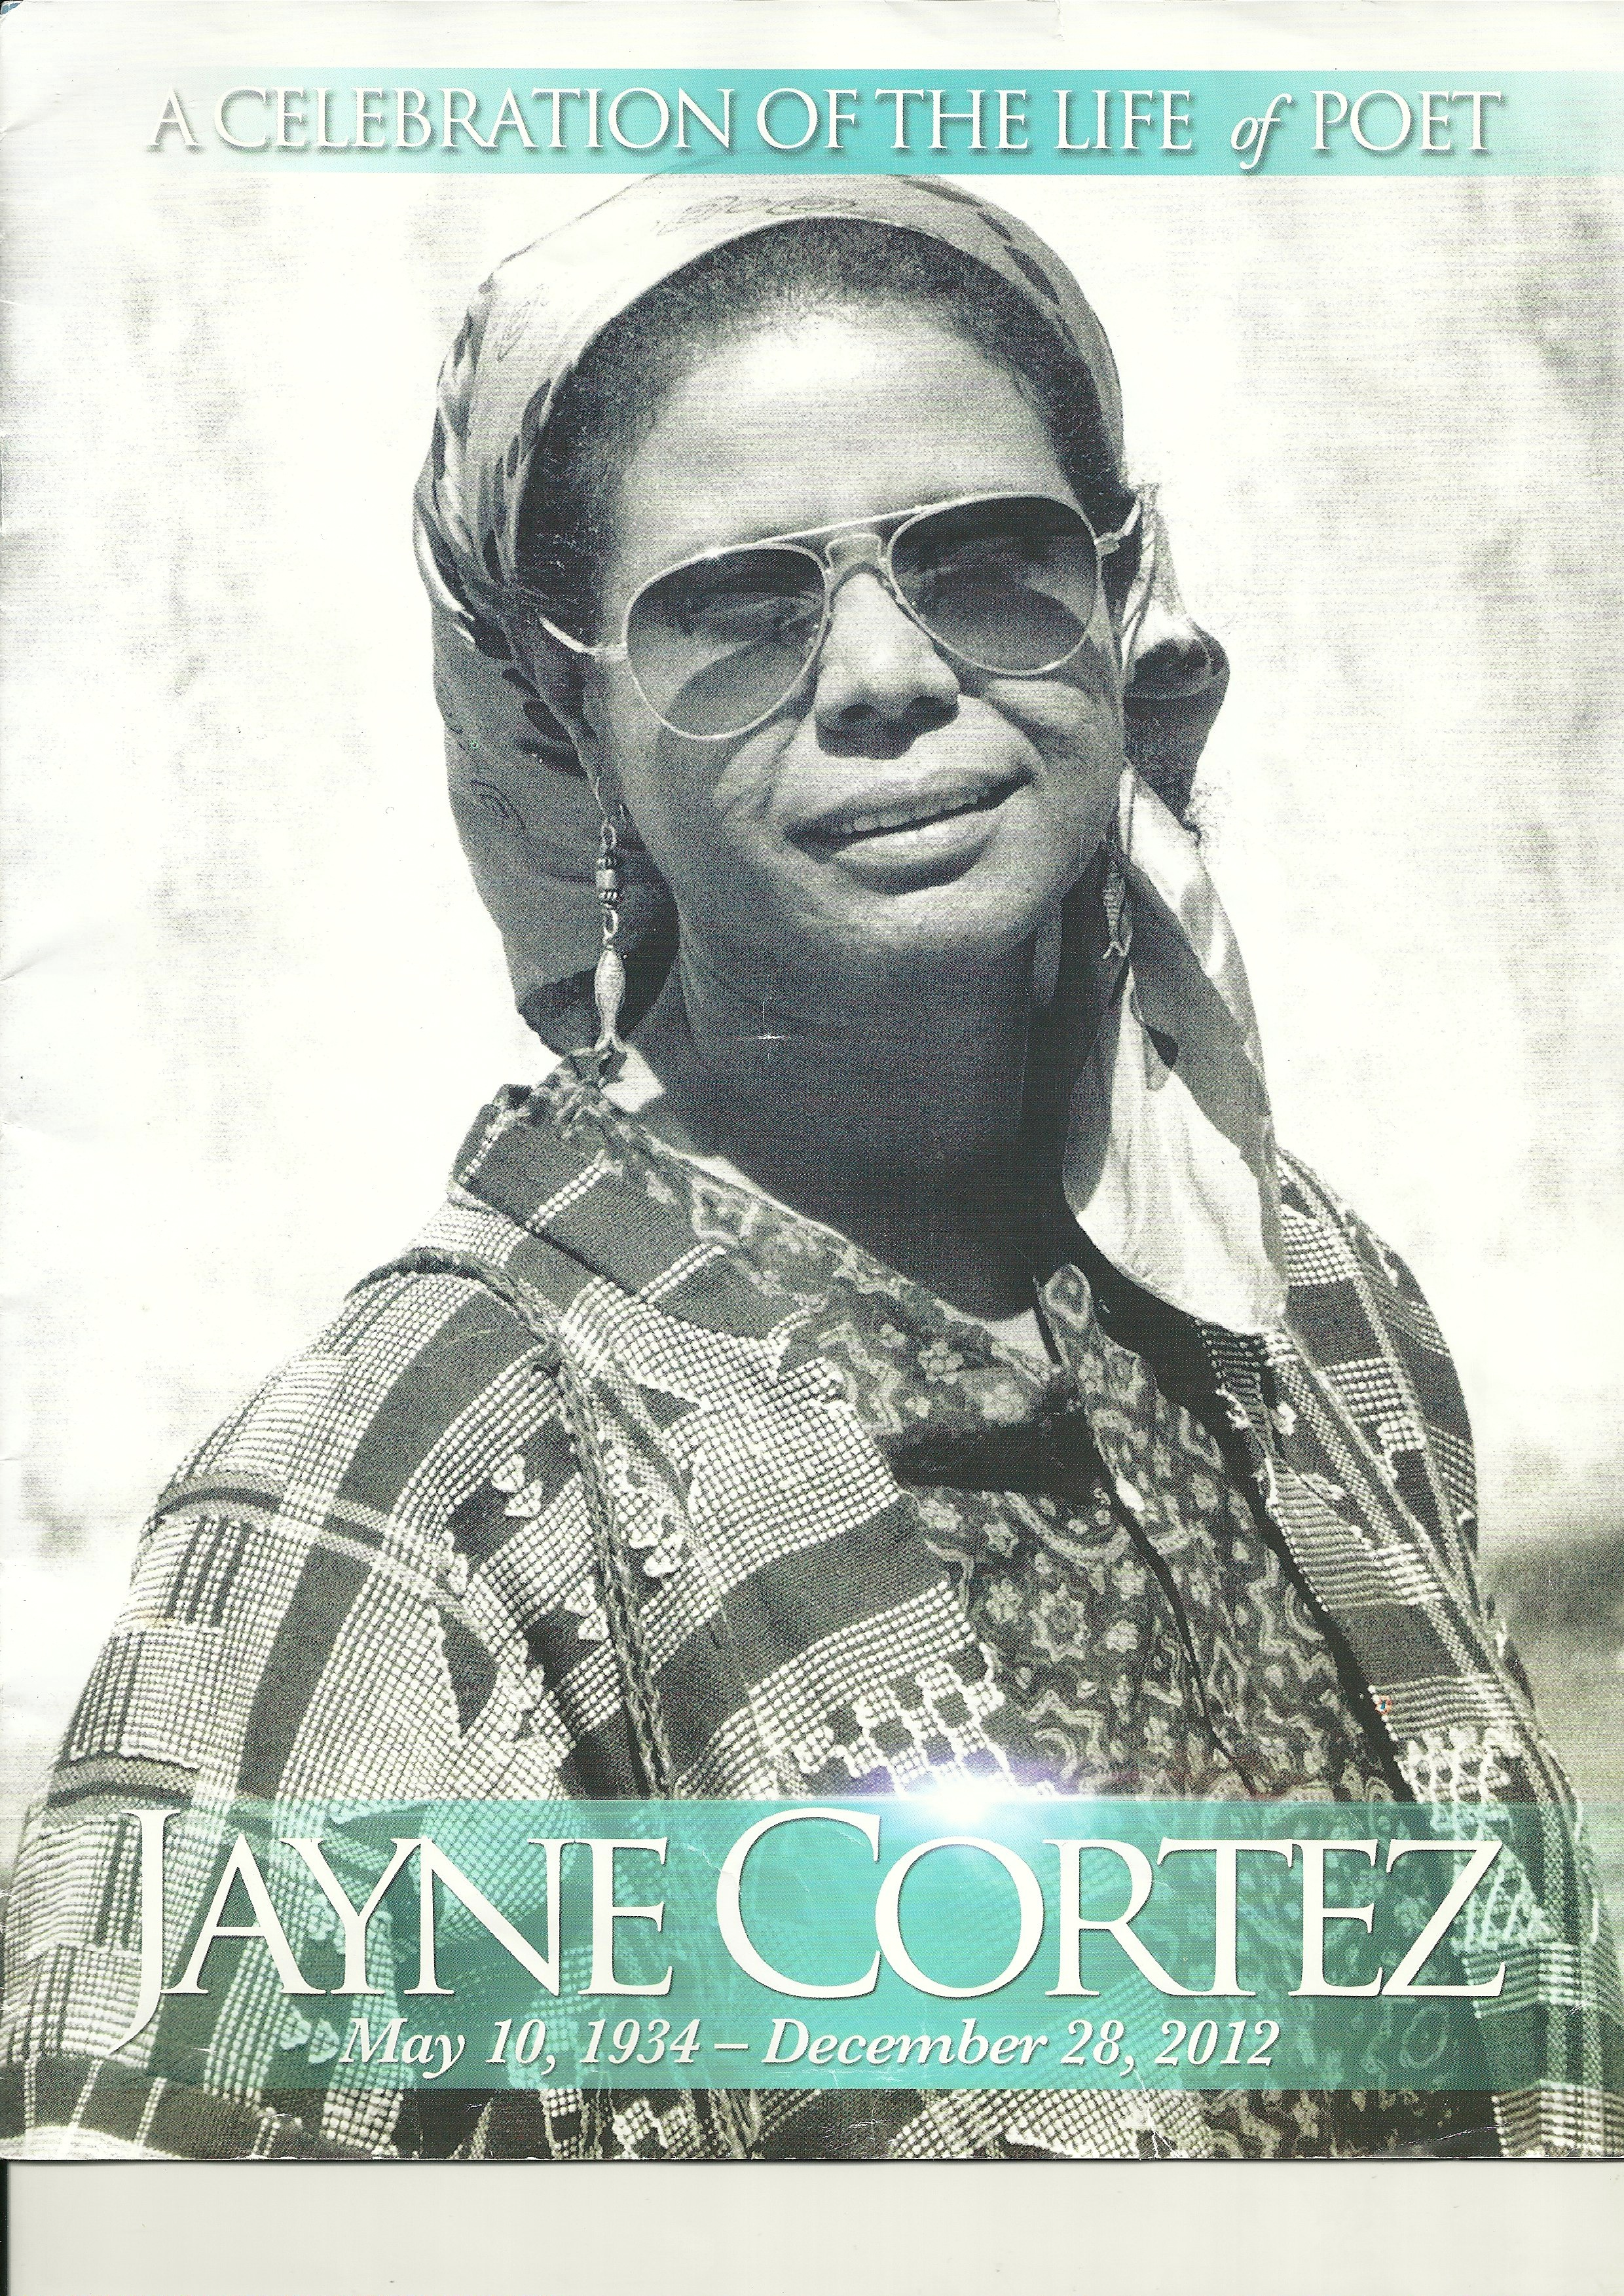 Cover of the Jayne Cortez memorial program, from the Celebration of her life at Cooper Union's Great Hall, 2012.